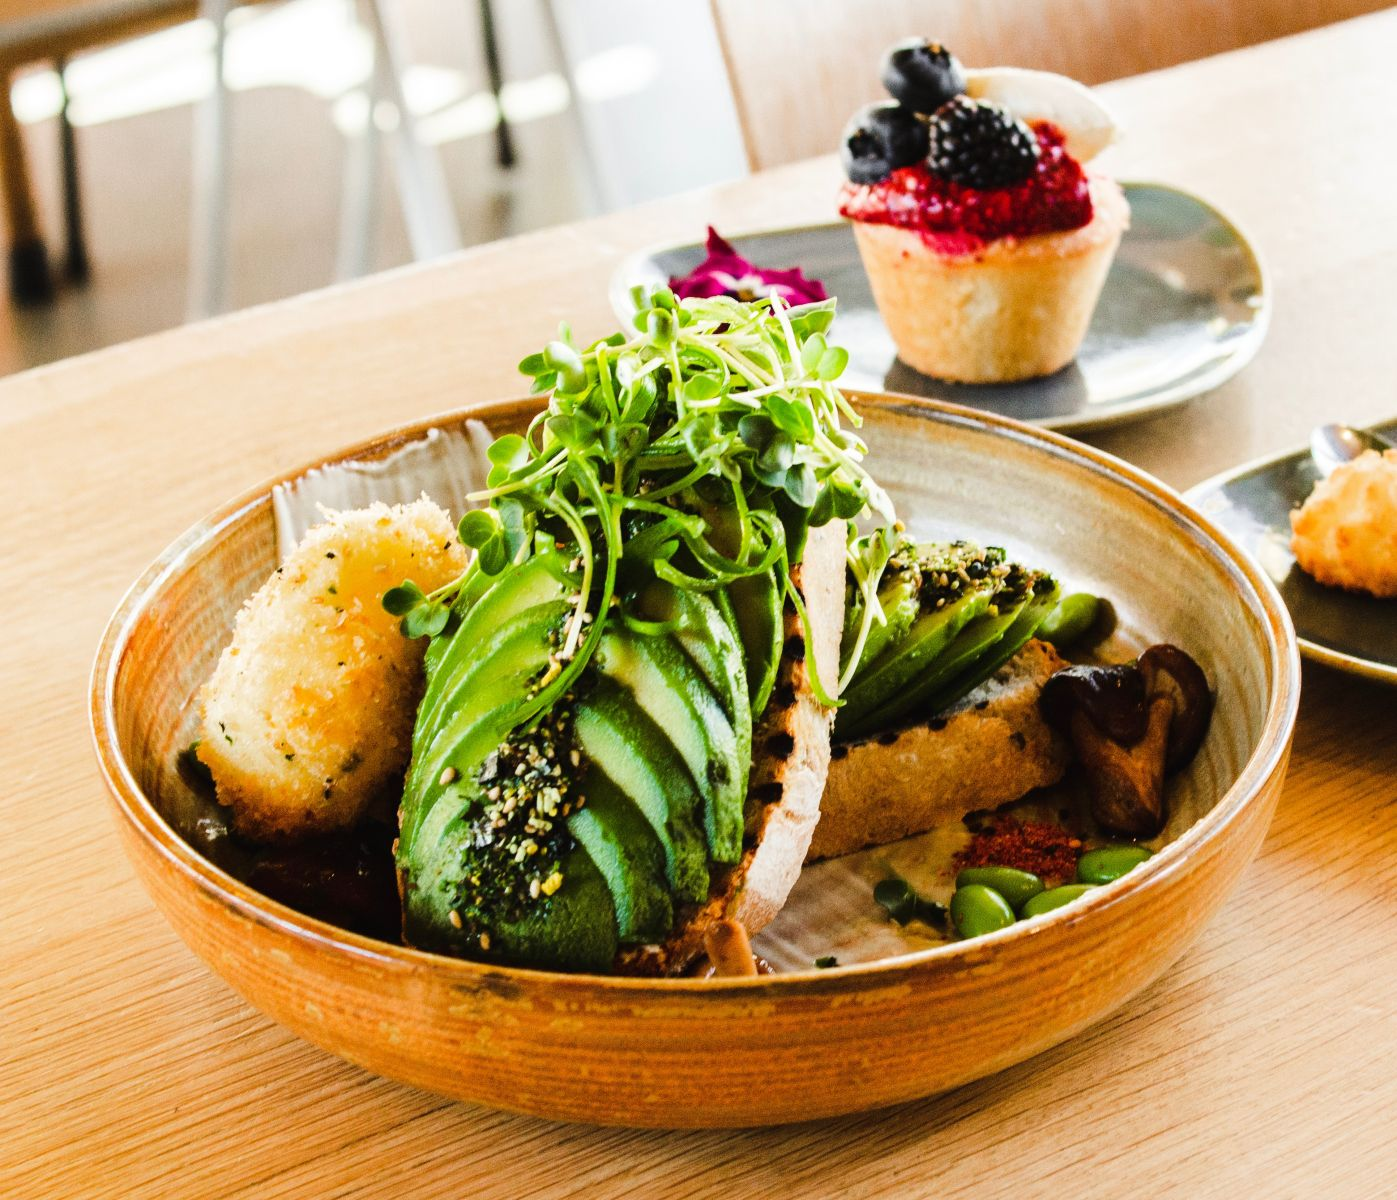 best-brunch-spots-top-brunch-restaurants-in-savannah-ga-fox-and-fig-vegetarian-vegan-brunch